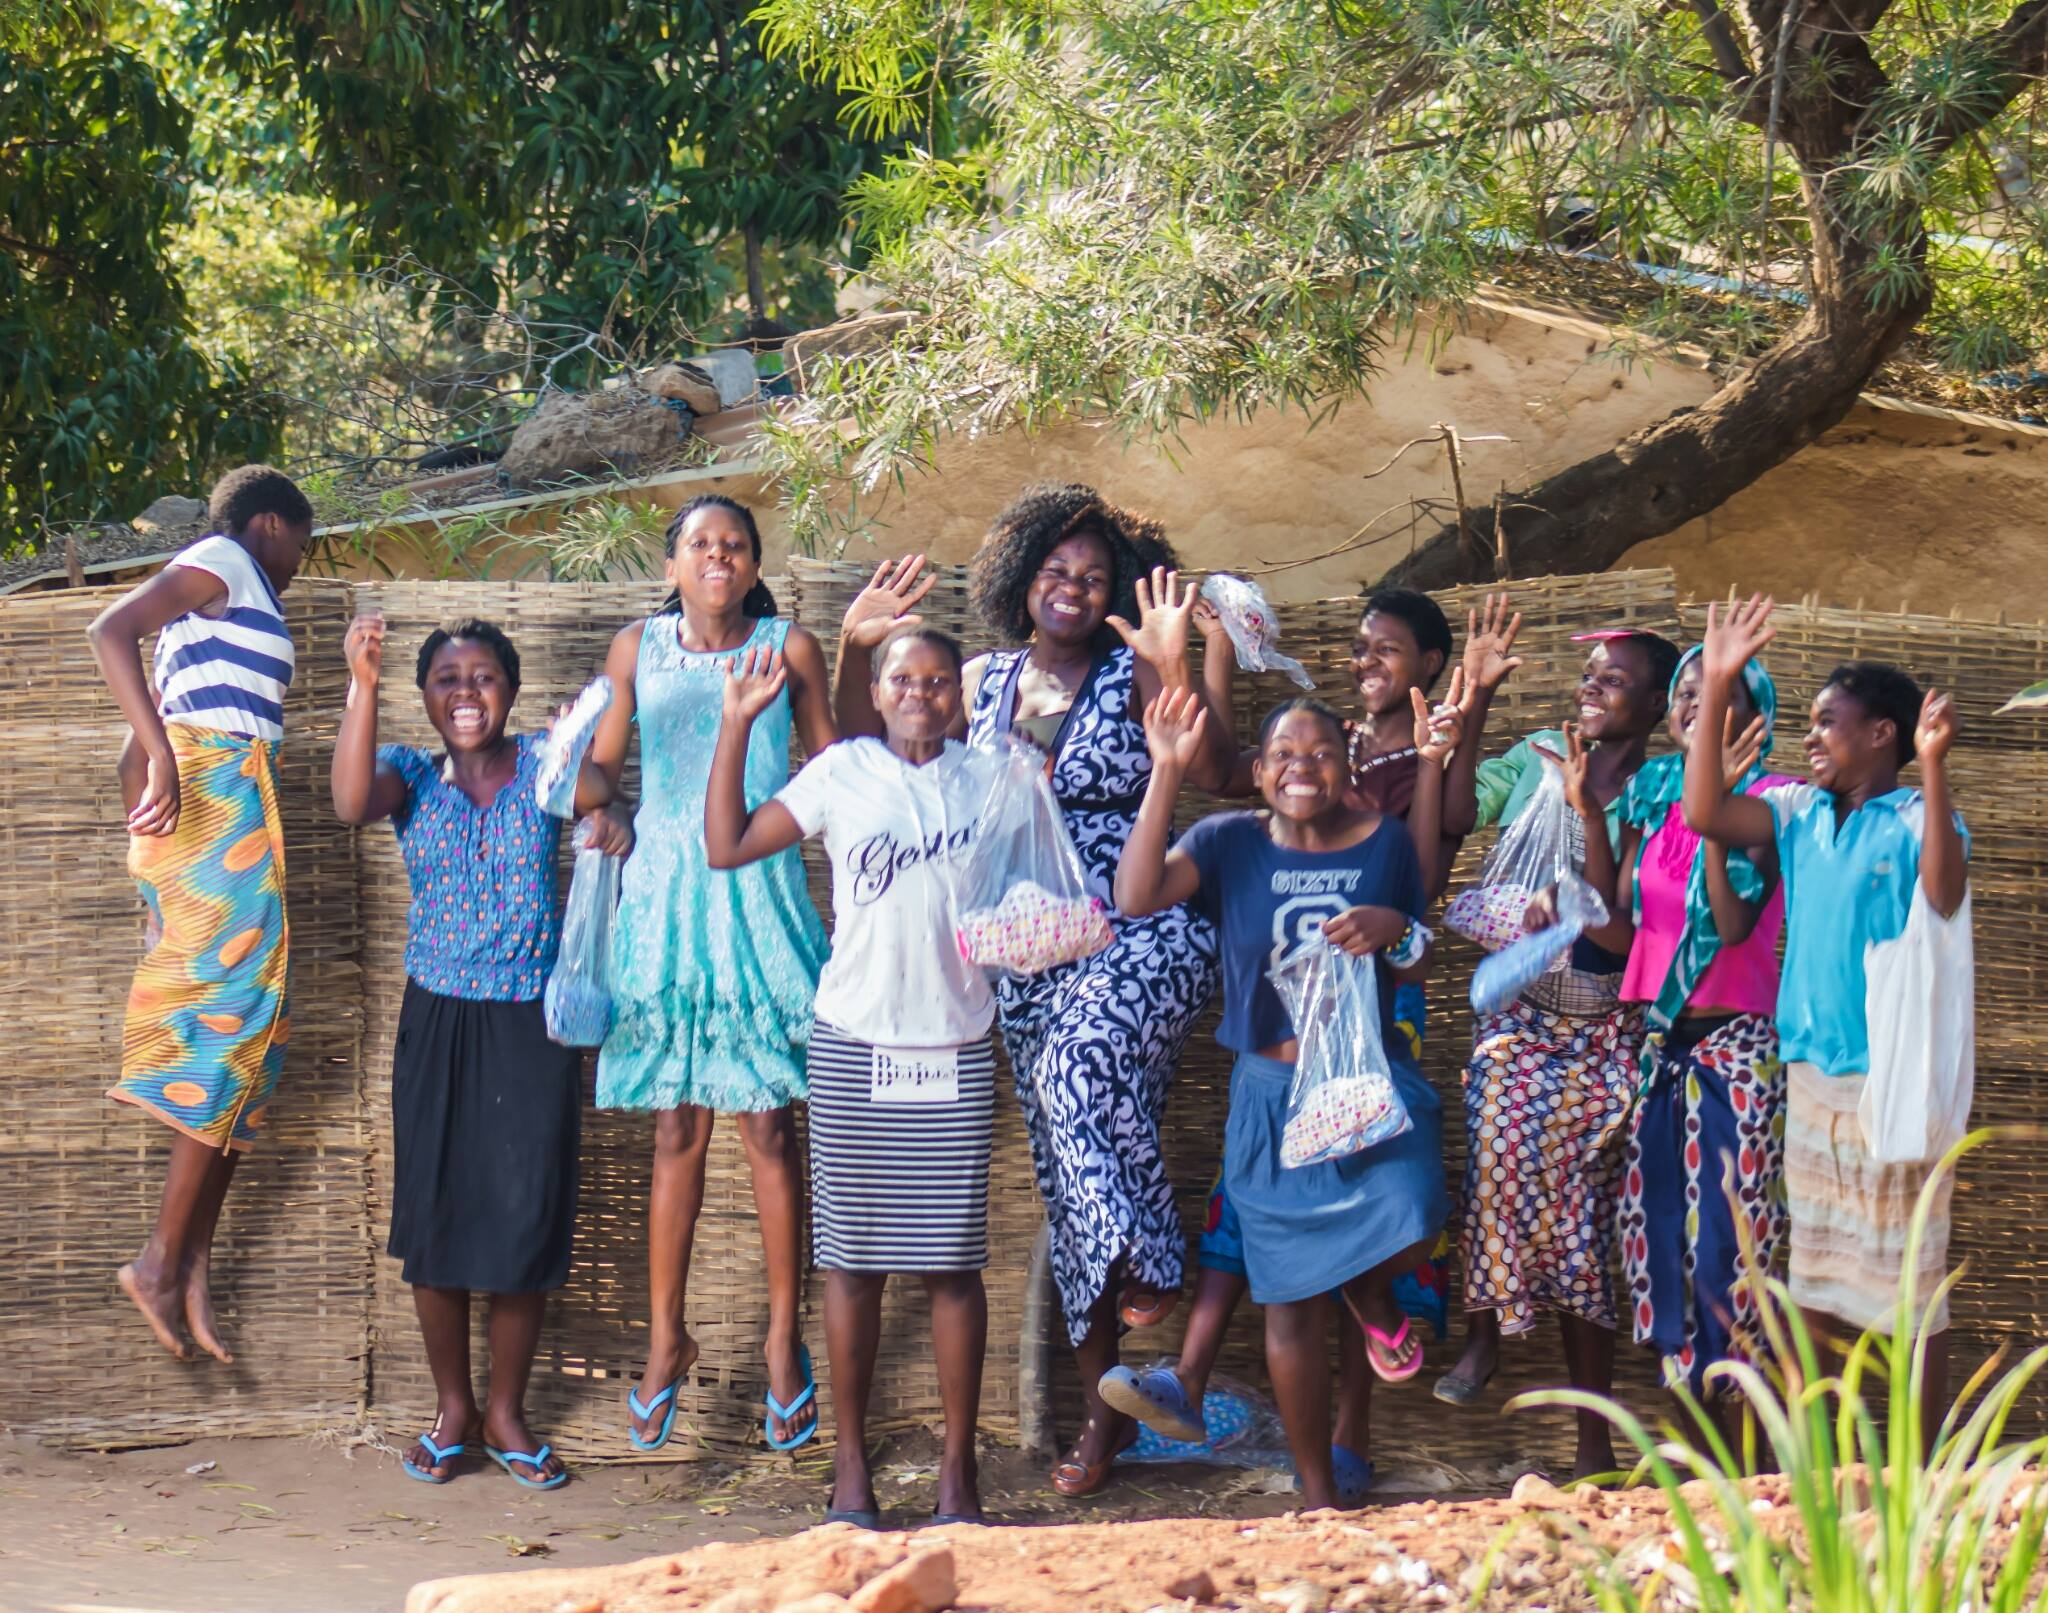 Trinitas Mhango participated in Flame Tree Initiative's Development Entrepreneurship Lab in 2016. Her social enterprise, Tina Pads, supports adolescent girls in Malawi to stay in school by delivering reproductive health education and reusable sanitary pads. Here, she is with young girls from Blantyre who were grateful and excited to receive pad packs from Tina Pads.